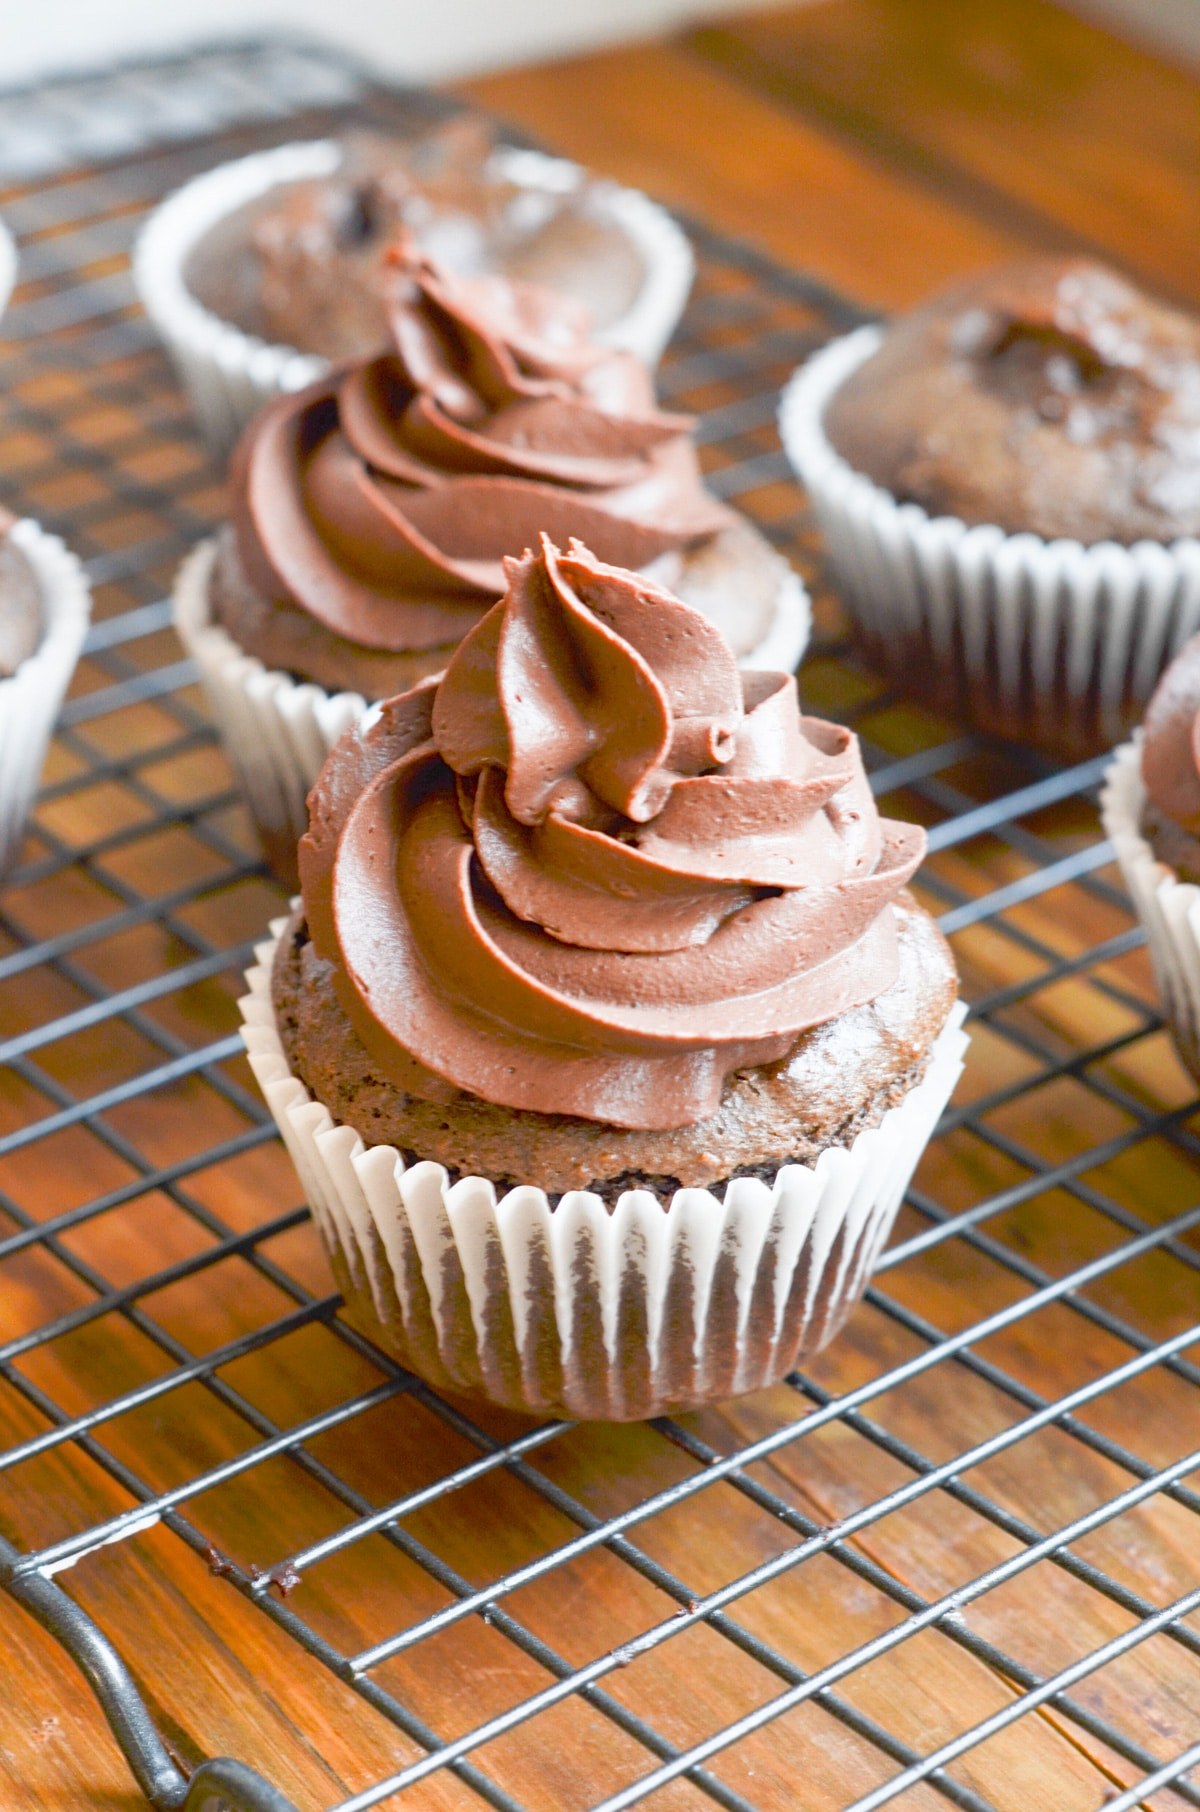 Paleo chocolate cupcakes with chocolate frosting.